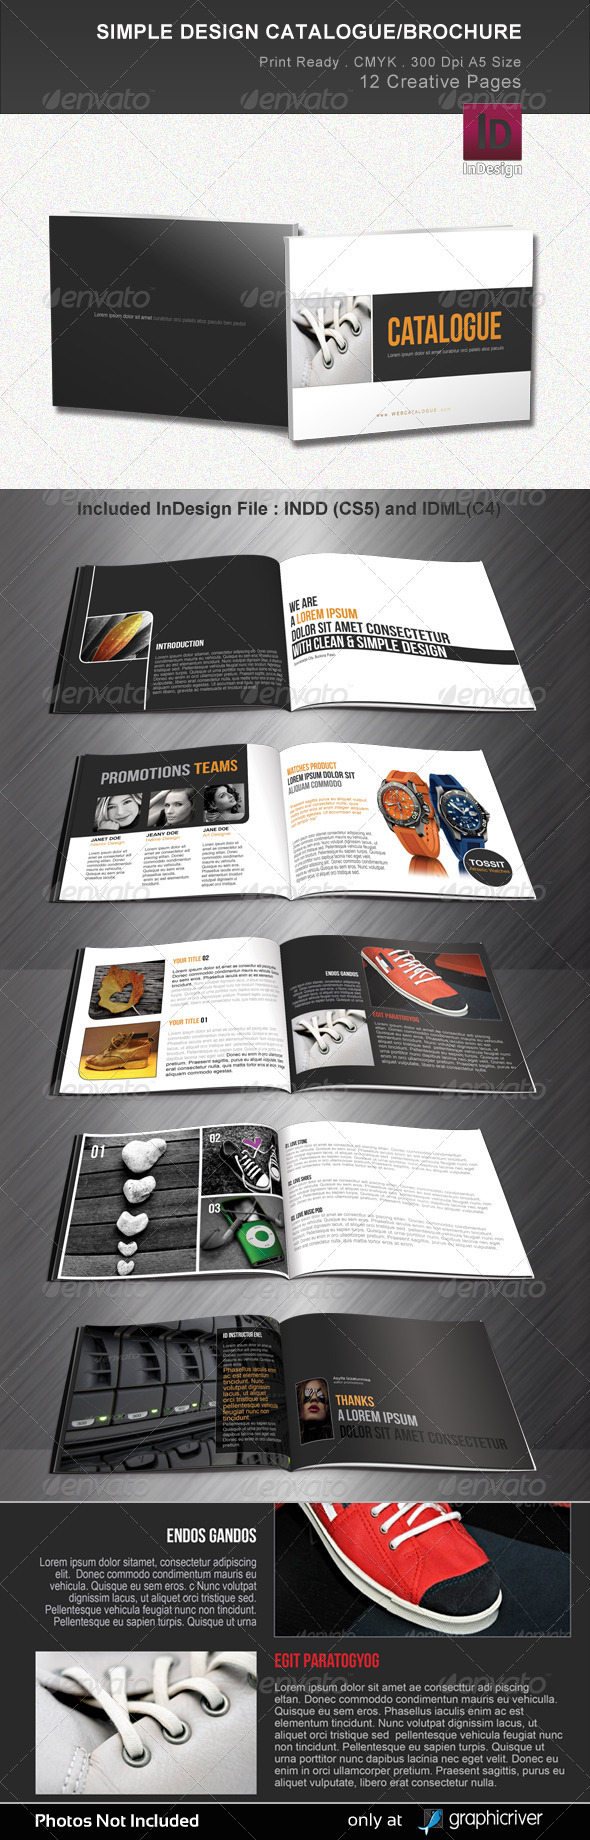 GraphicRiver Simple Design Catalogue Brochure 2387243